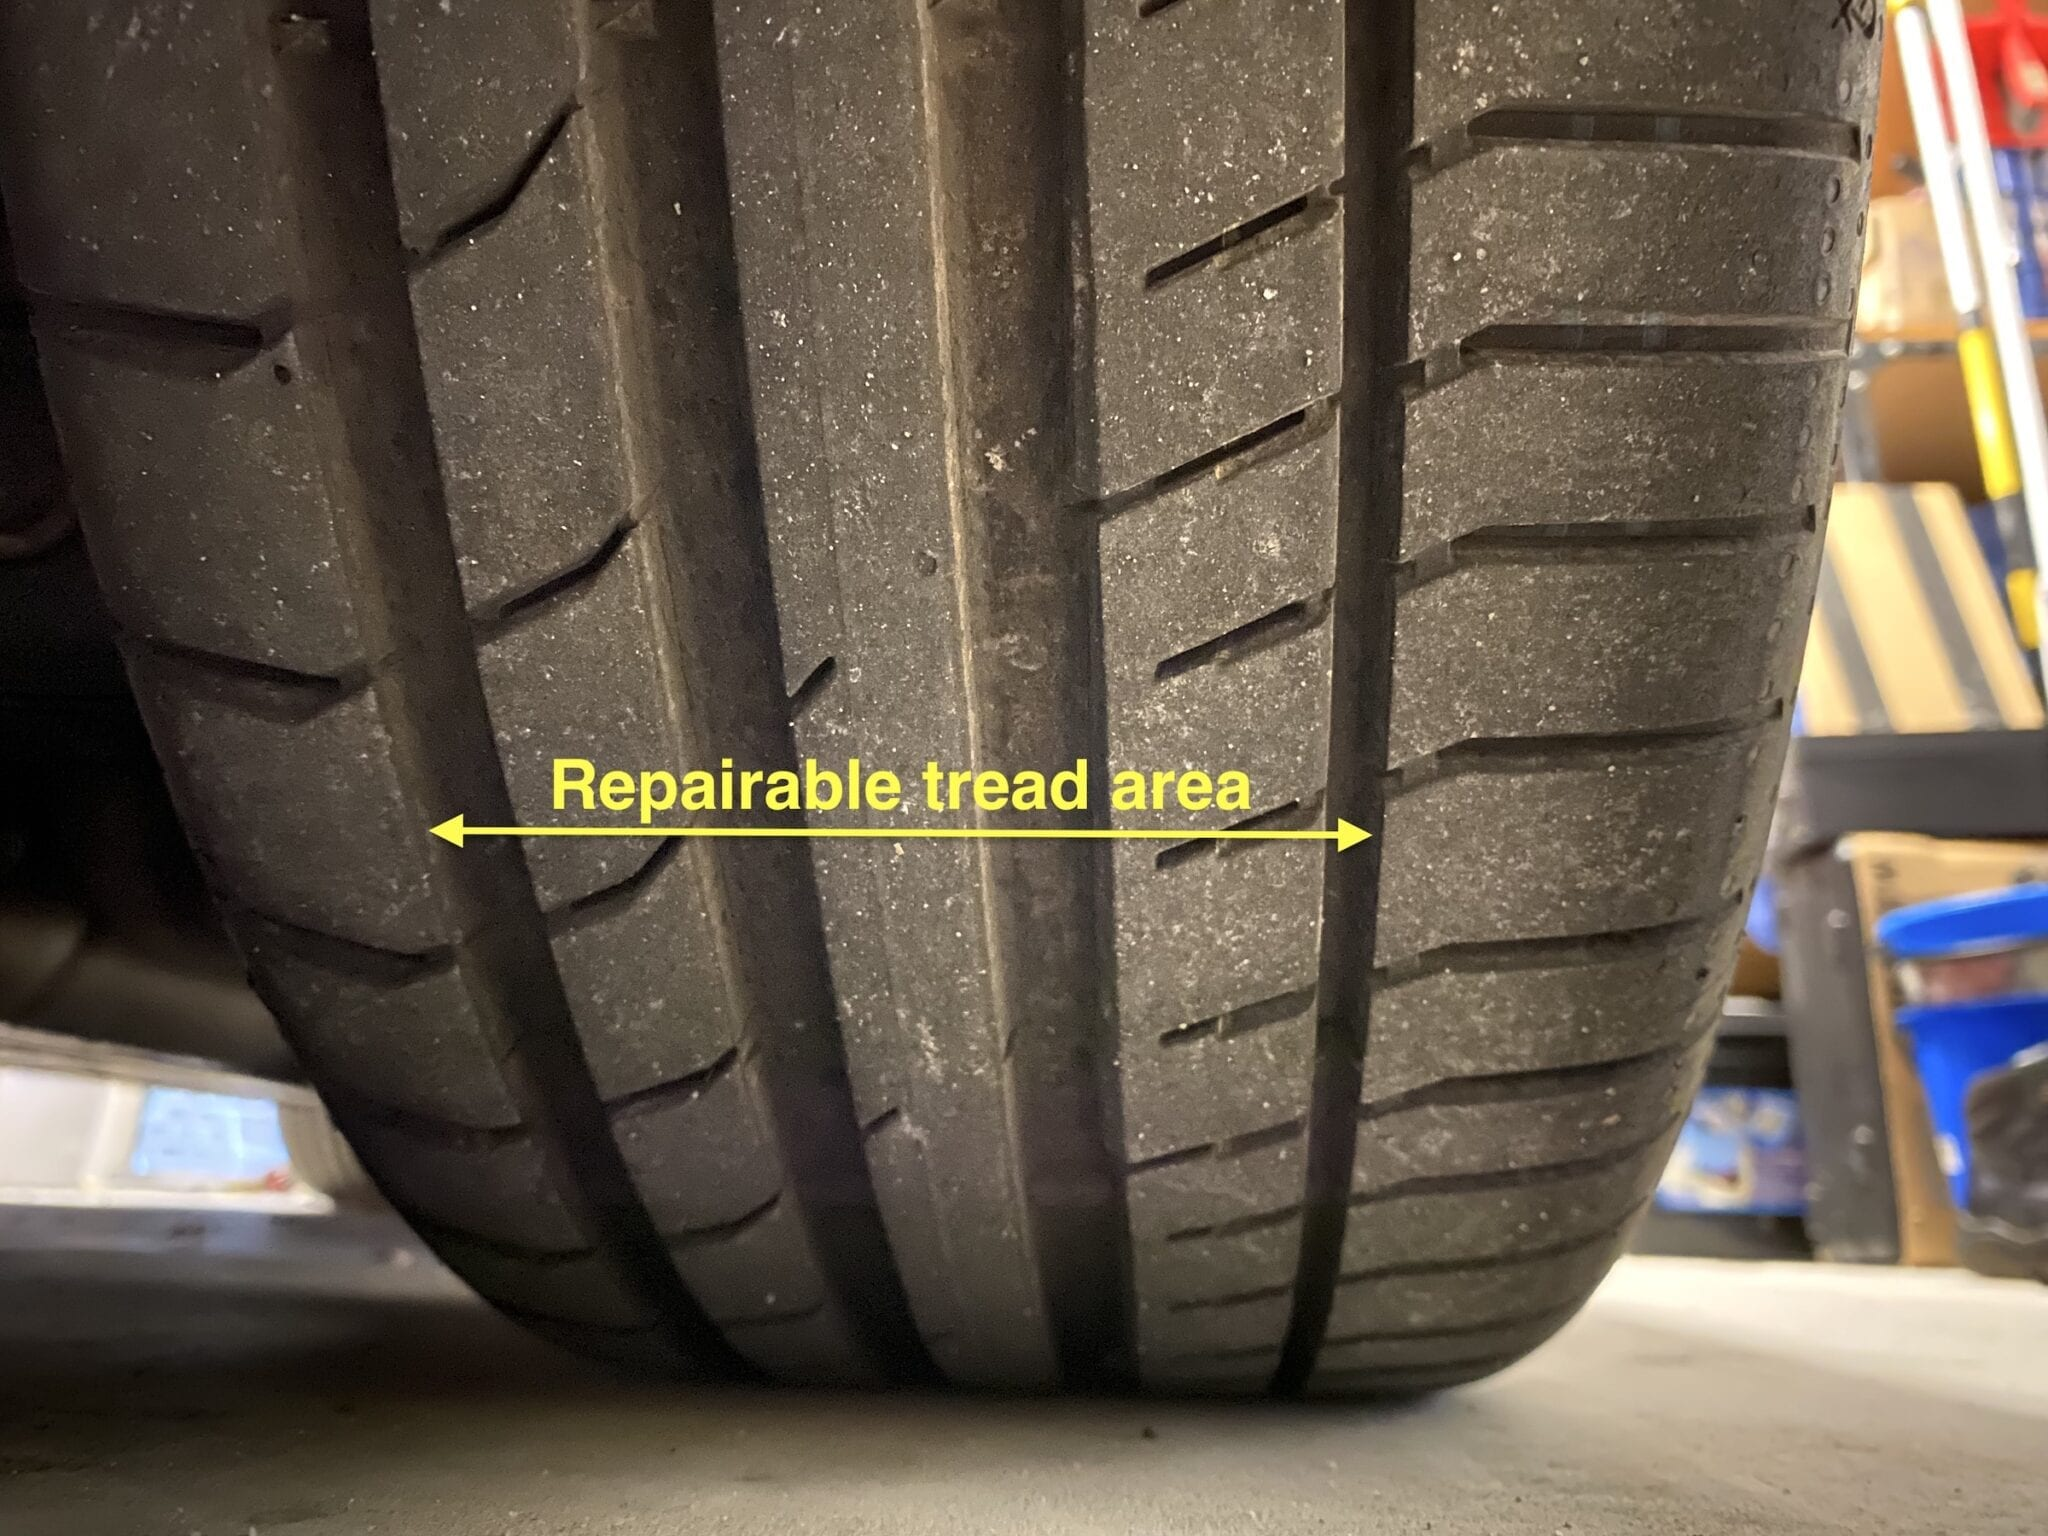 Are tyre plugs legal? The repairable tread area of a typical tyre.